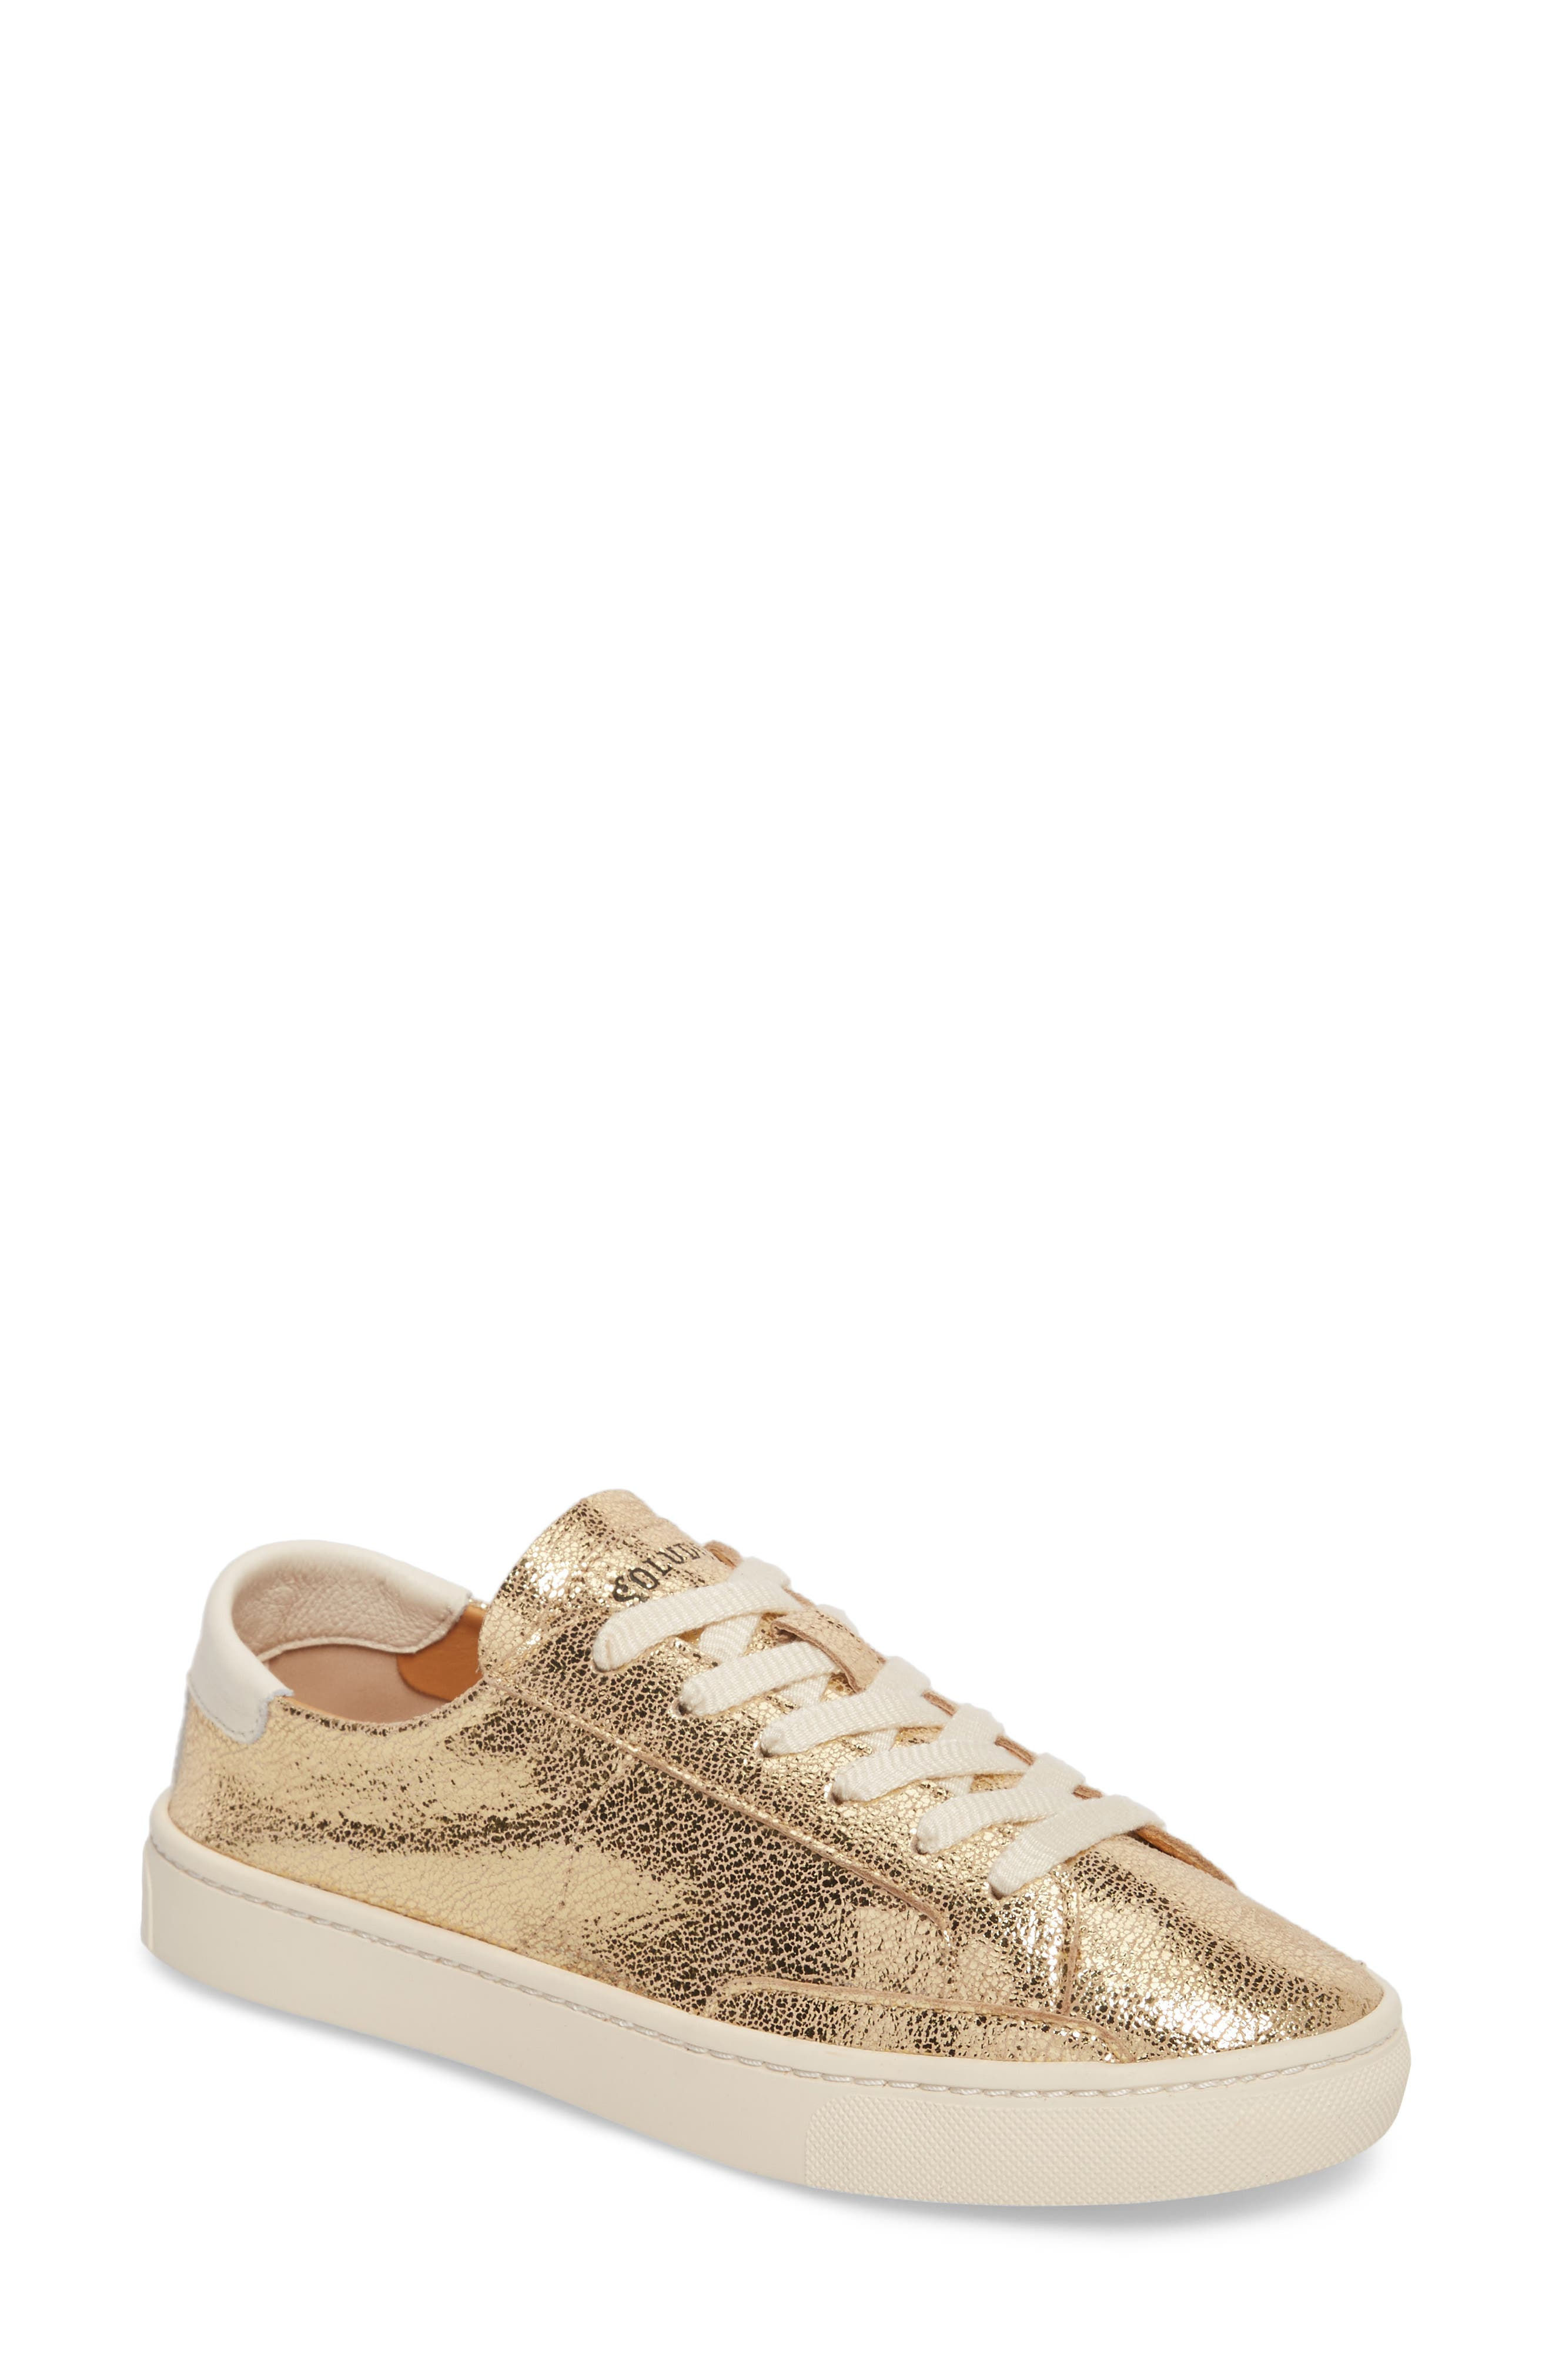 Ibiza Metallic Lace-Up Sneaker,                             Main thumbnail 1, color,                             Pale Gold Leather